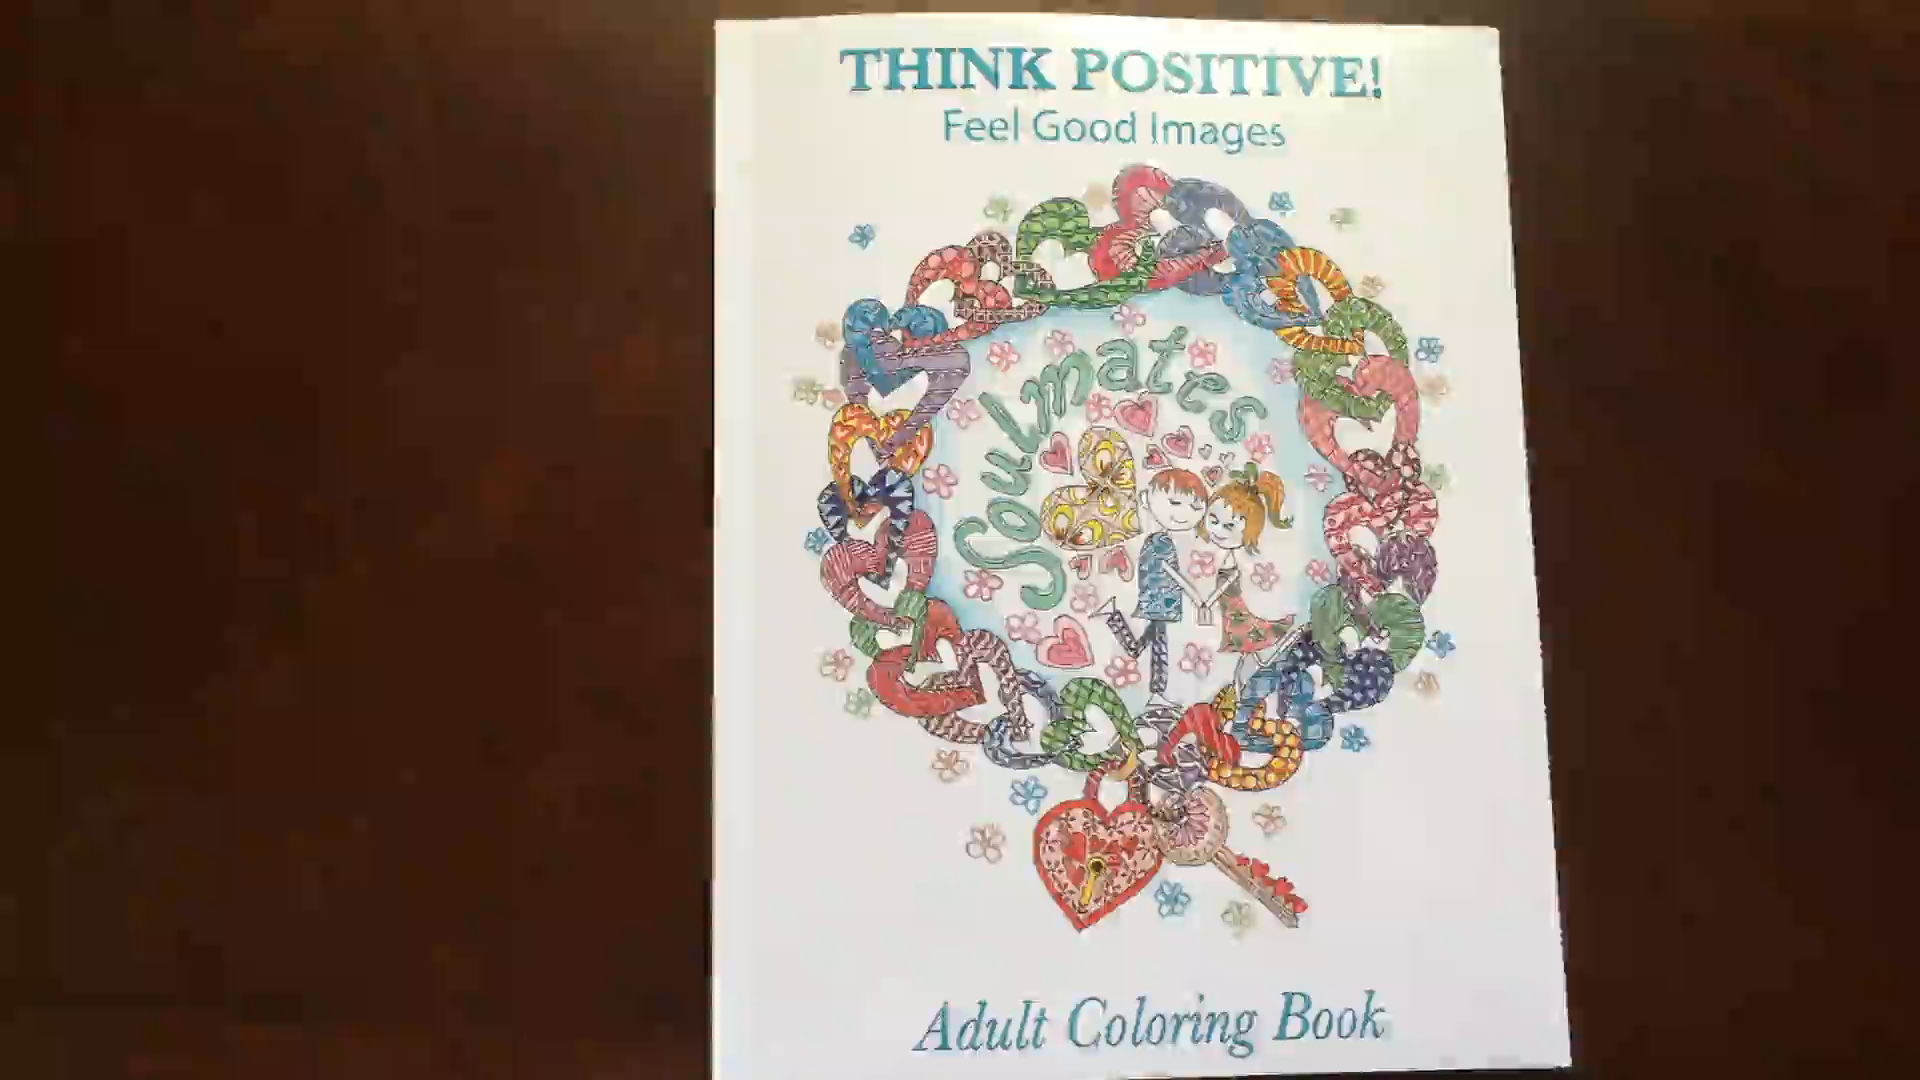 The coloring book of positivity - Most Recent Customer Reviews